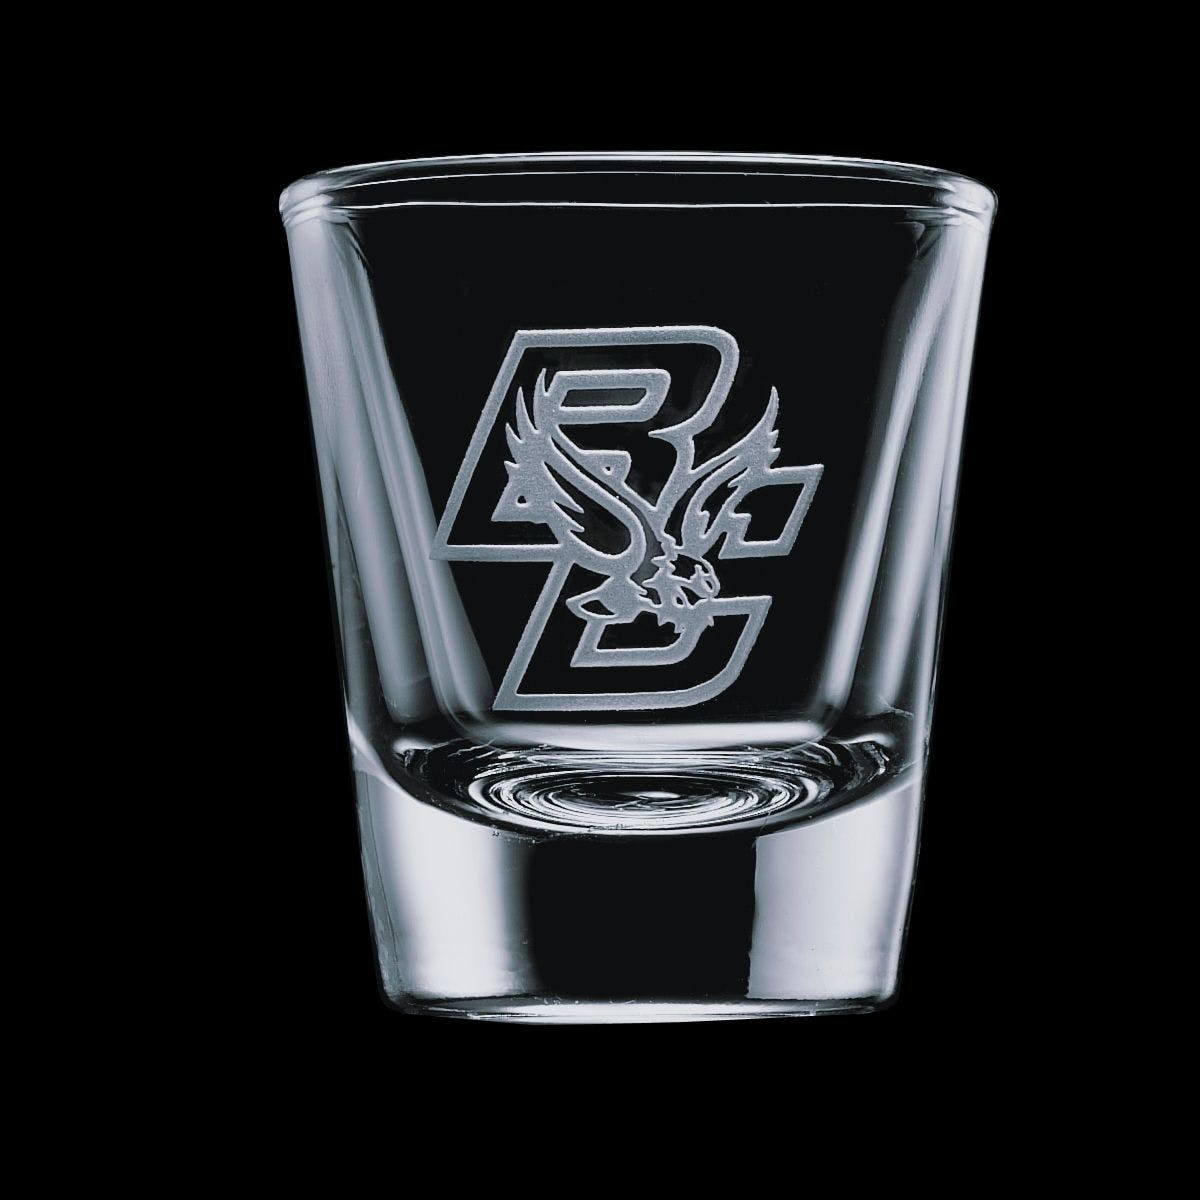 Shot Glasses Shot glass sold by Ink Splash Promos™, LLC